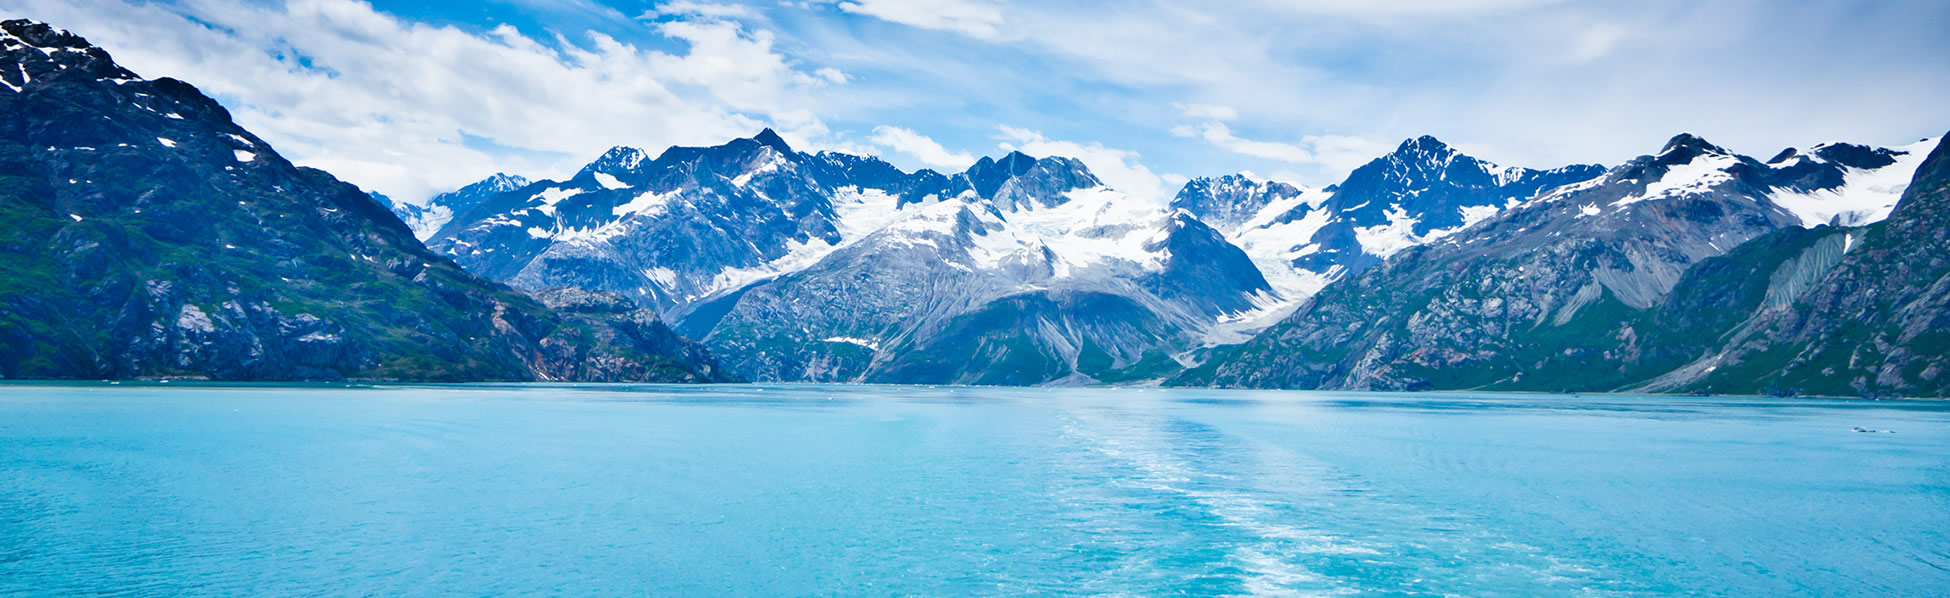 Alaska Cruises from Barrhead Travel